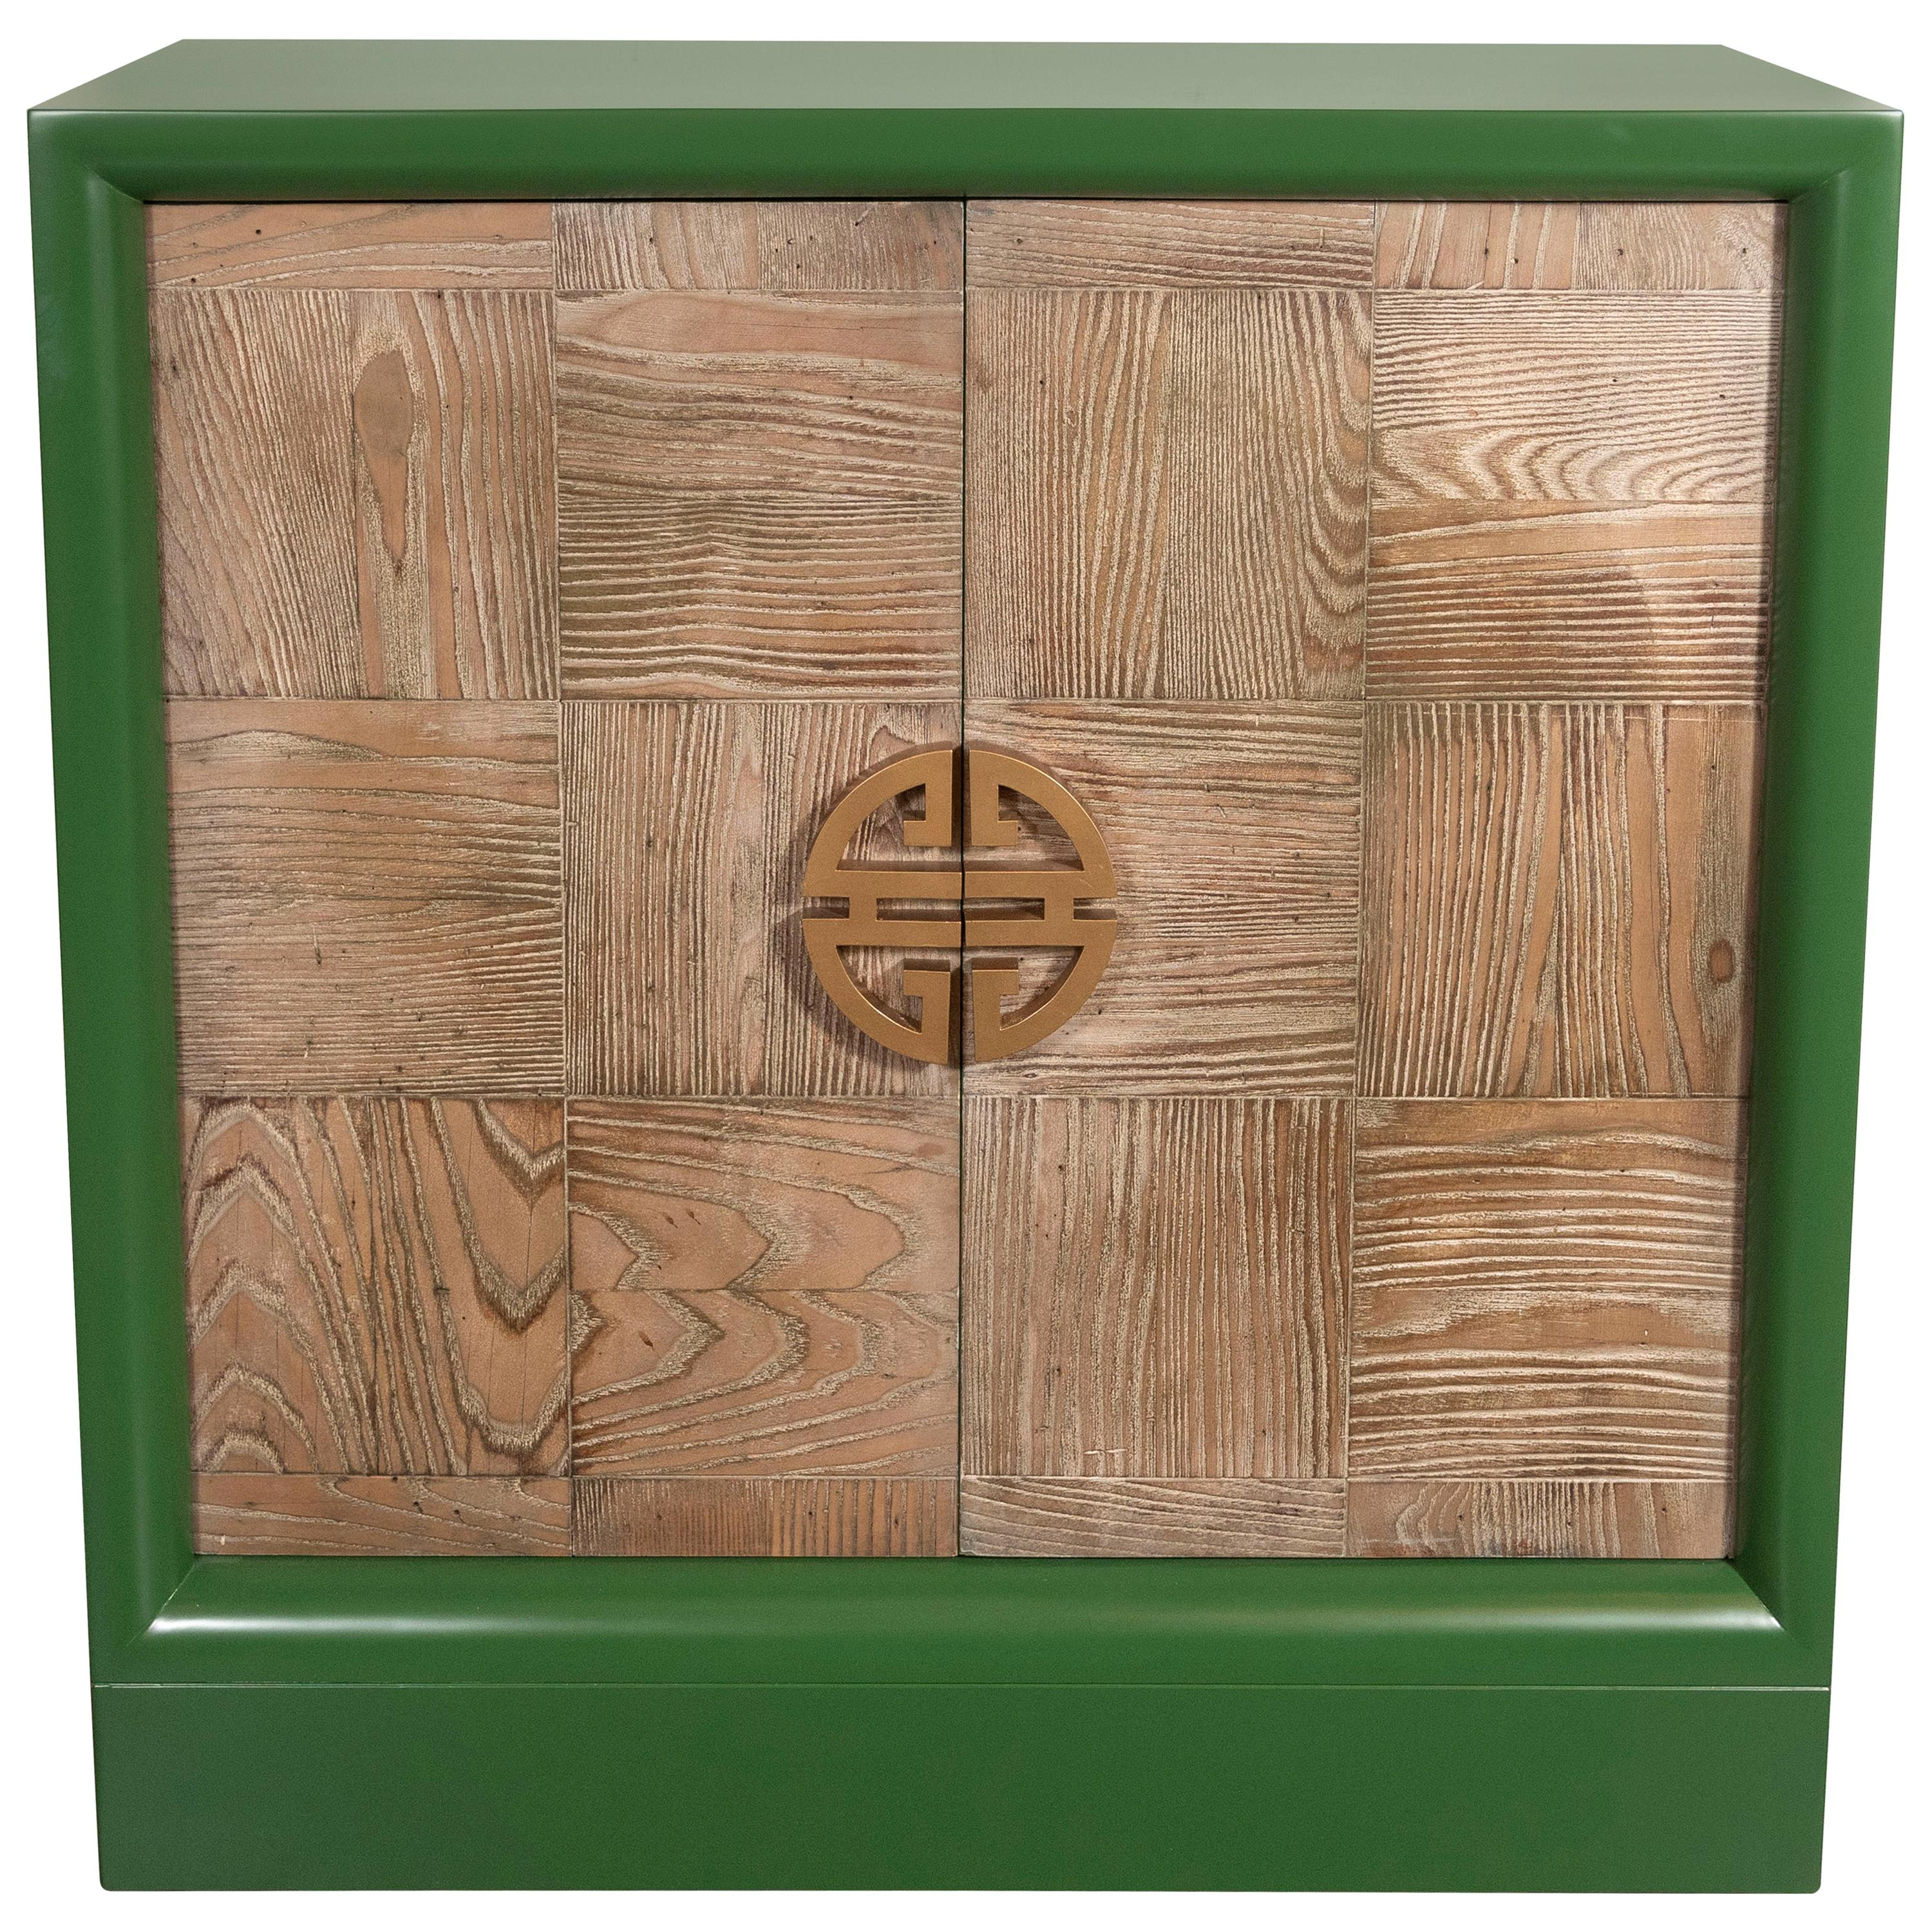 Midcentury Pickled Oak and Kelly Green Lacquer Bar Cabinet Signed James Mont